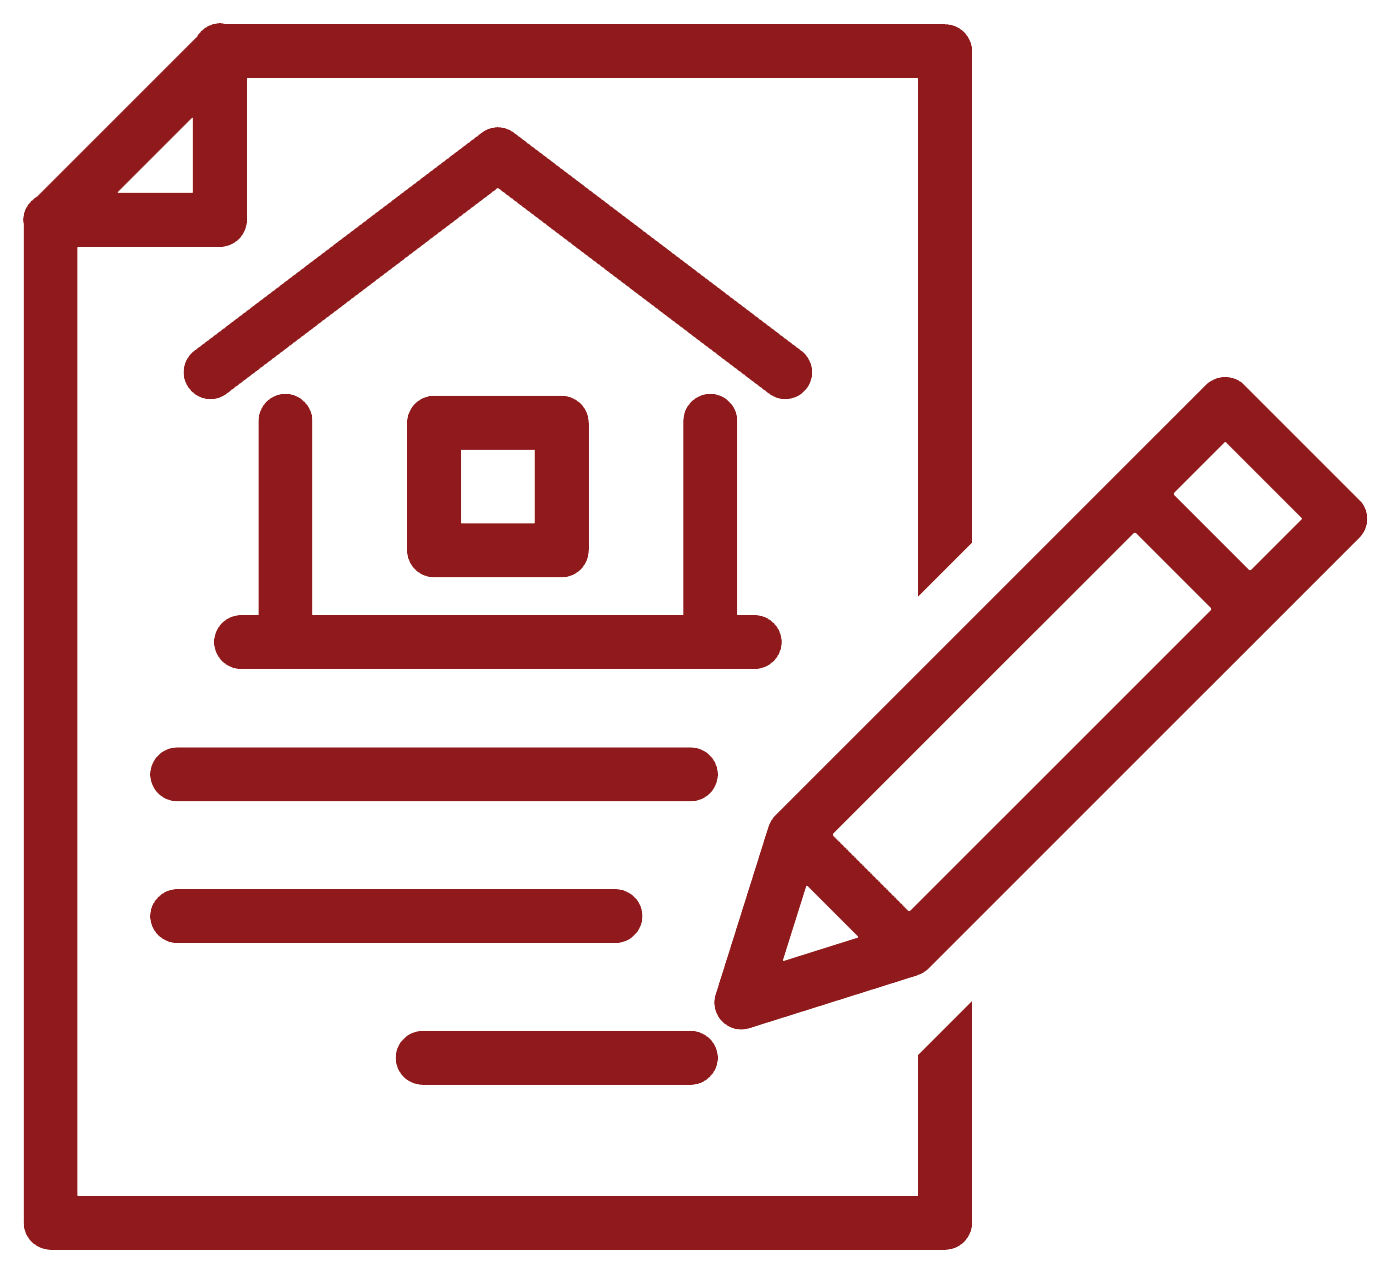 home document with pencil icon